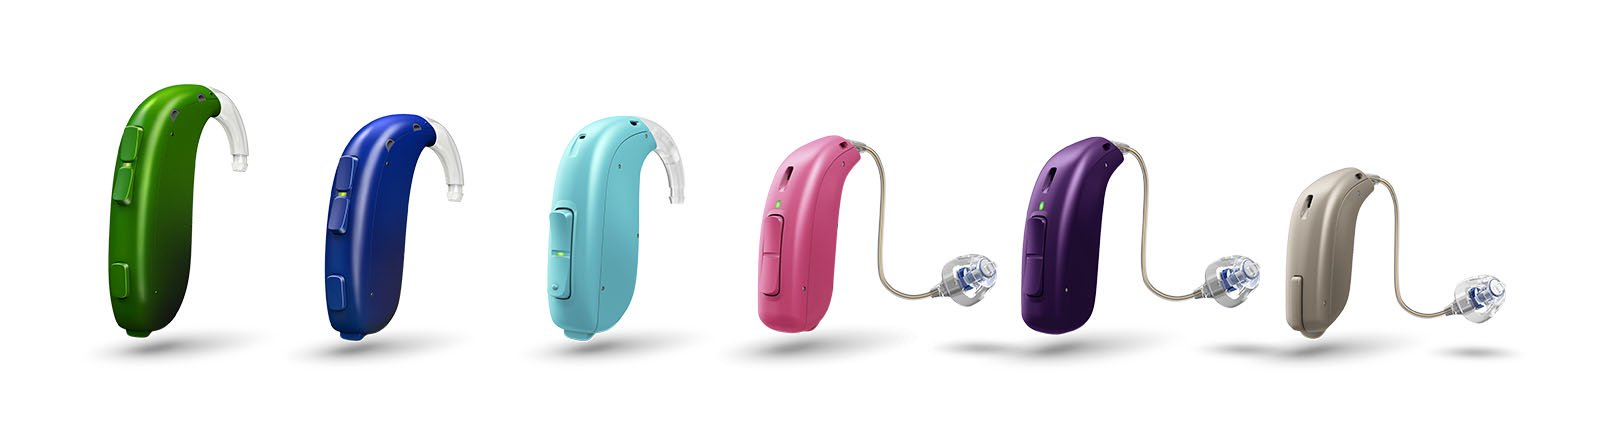 oticon_xceed_play_6_colours_product_lineup_cutout-1600x444